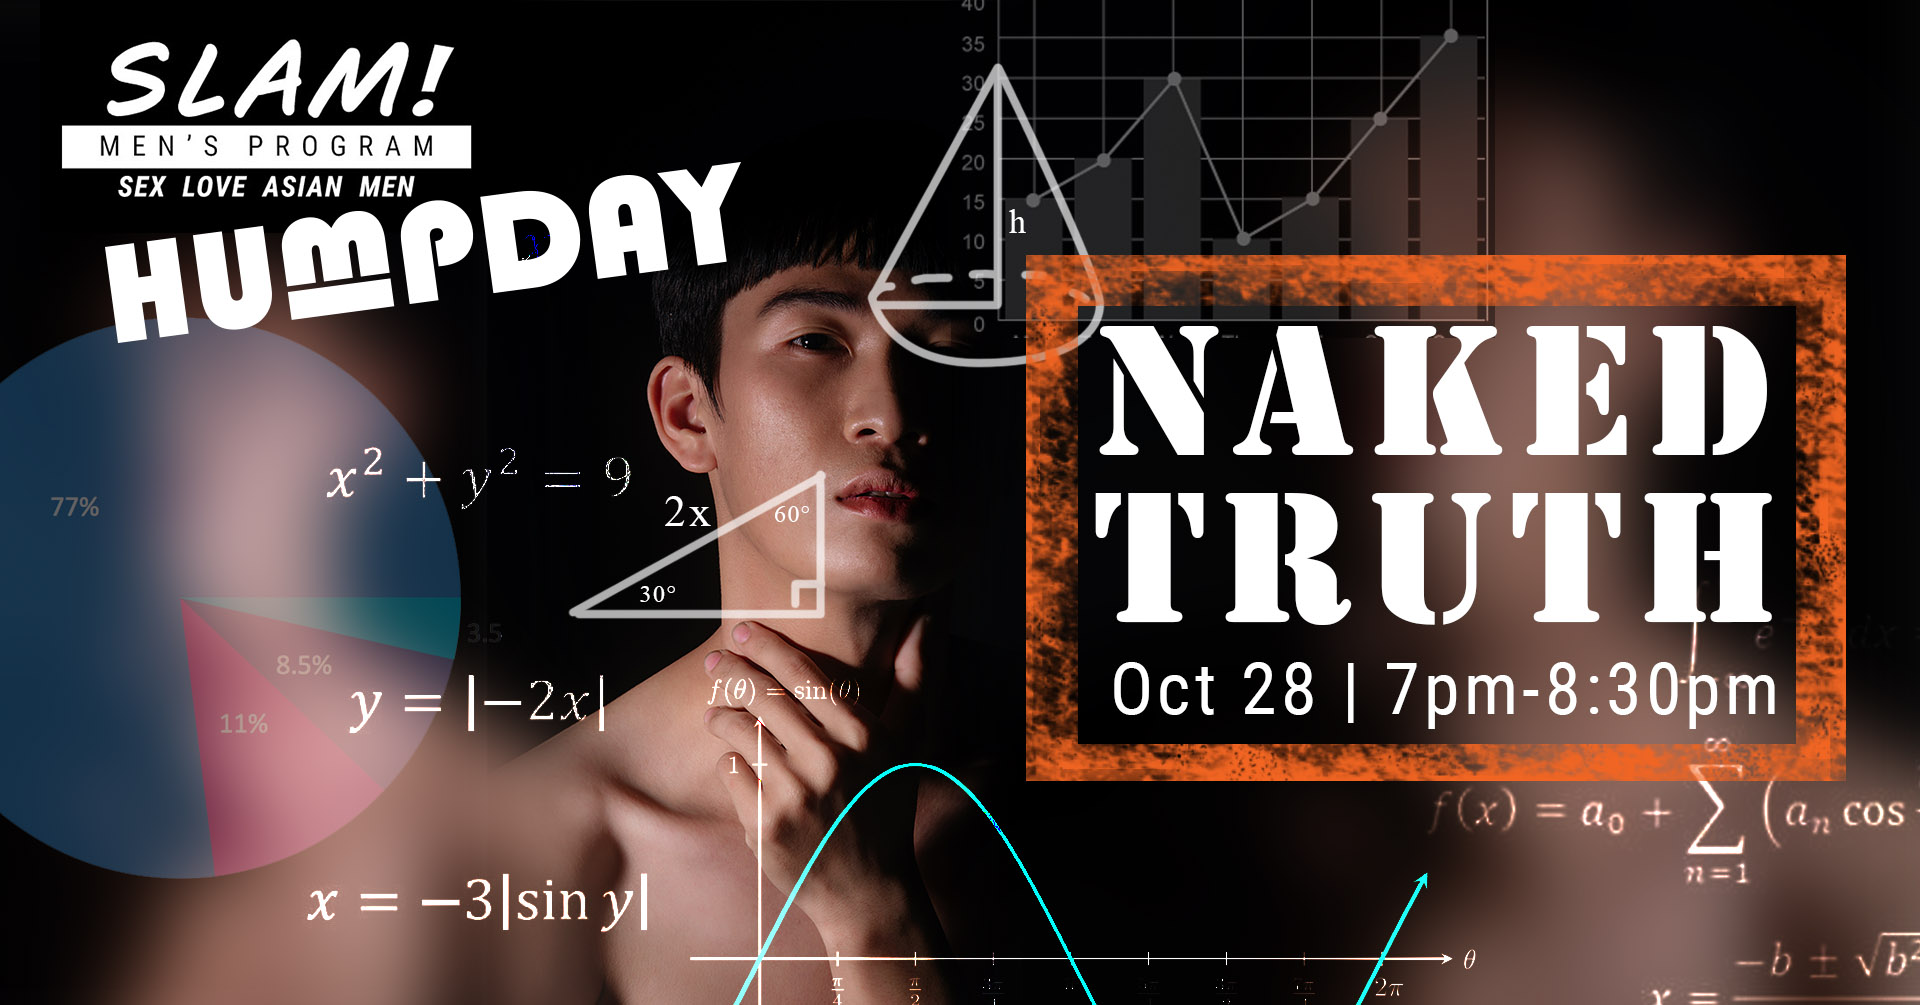 Flyer for Humpday Naked Truth